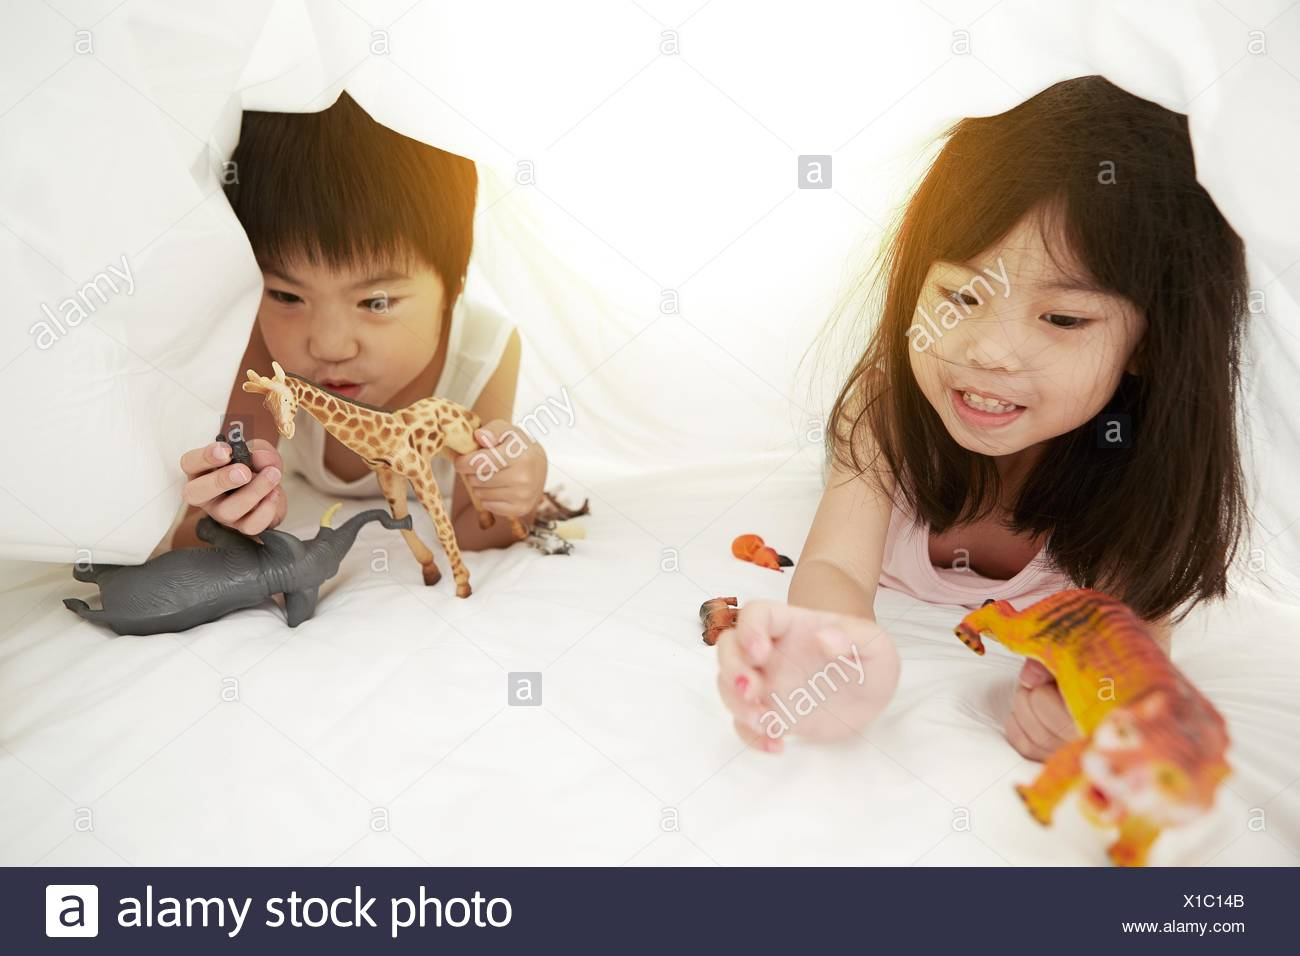 Young Chinese boy and girl in bed playing with their toys under the bedsheets - Stock Image